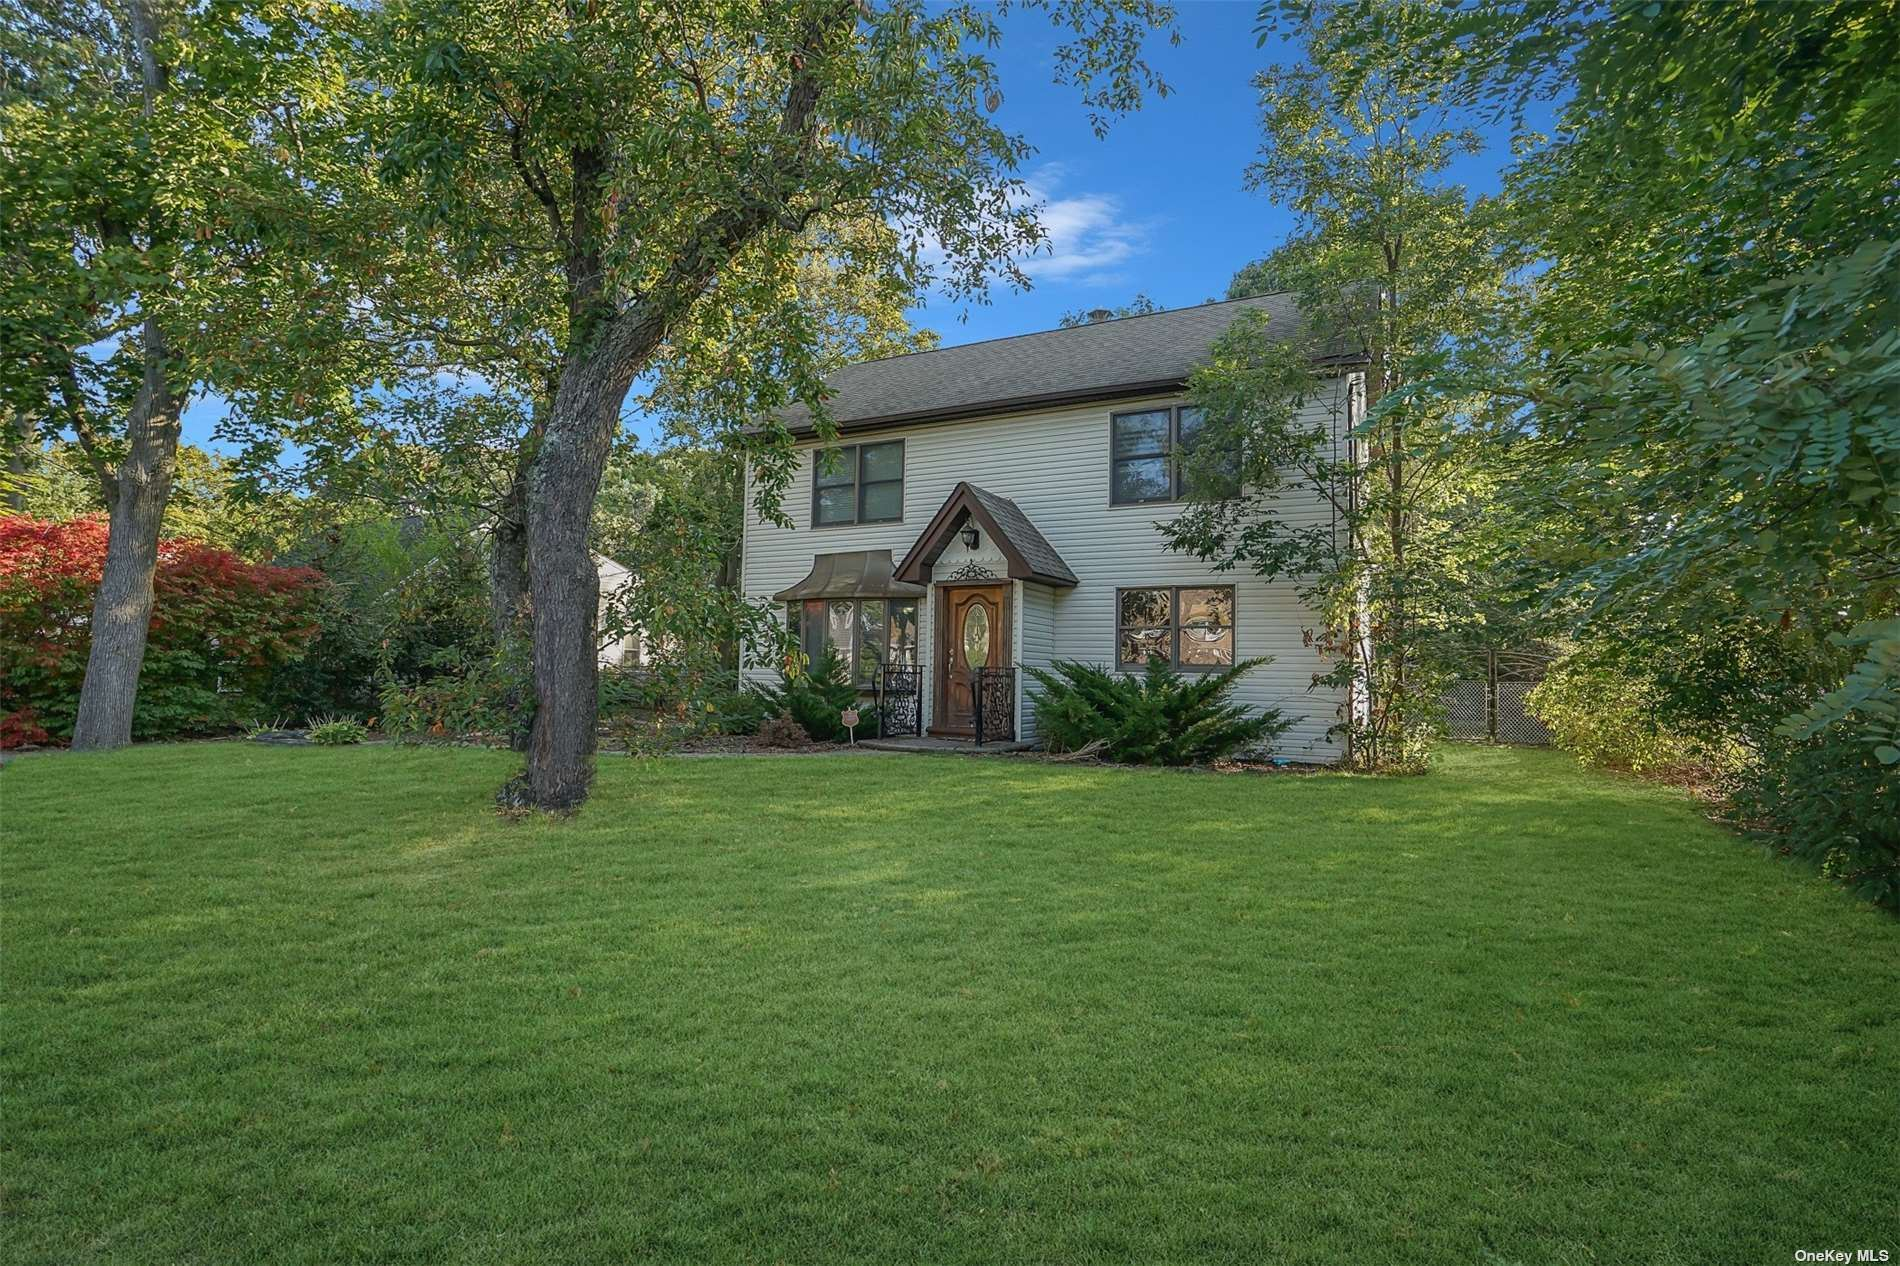 120 Stanley Drive, Centereach, NY 11720 - MLS#: 3319991